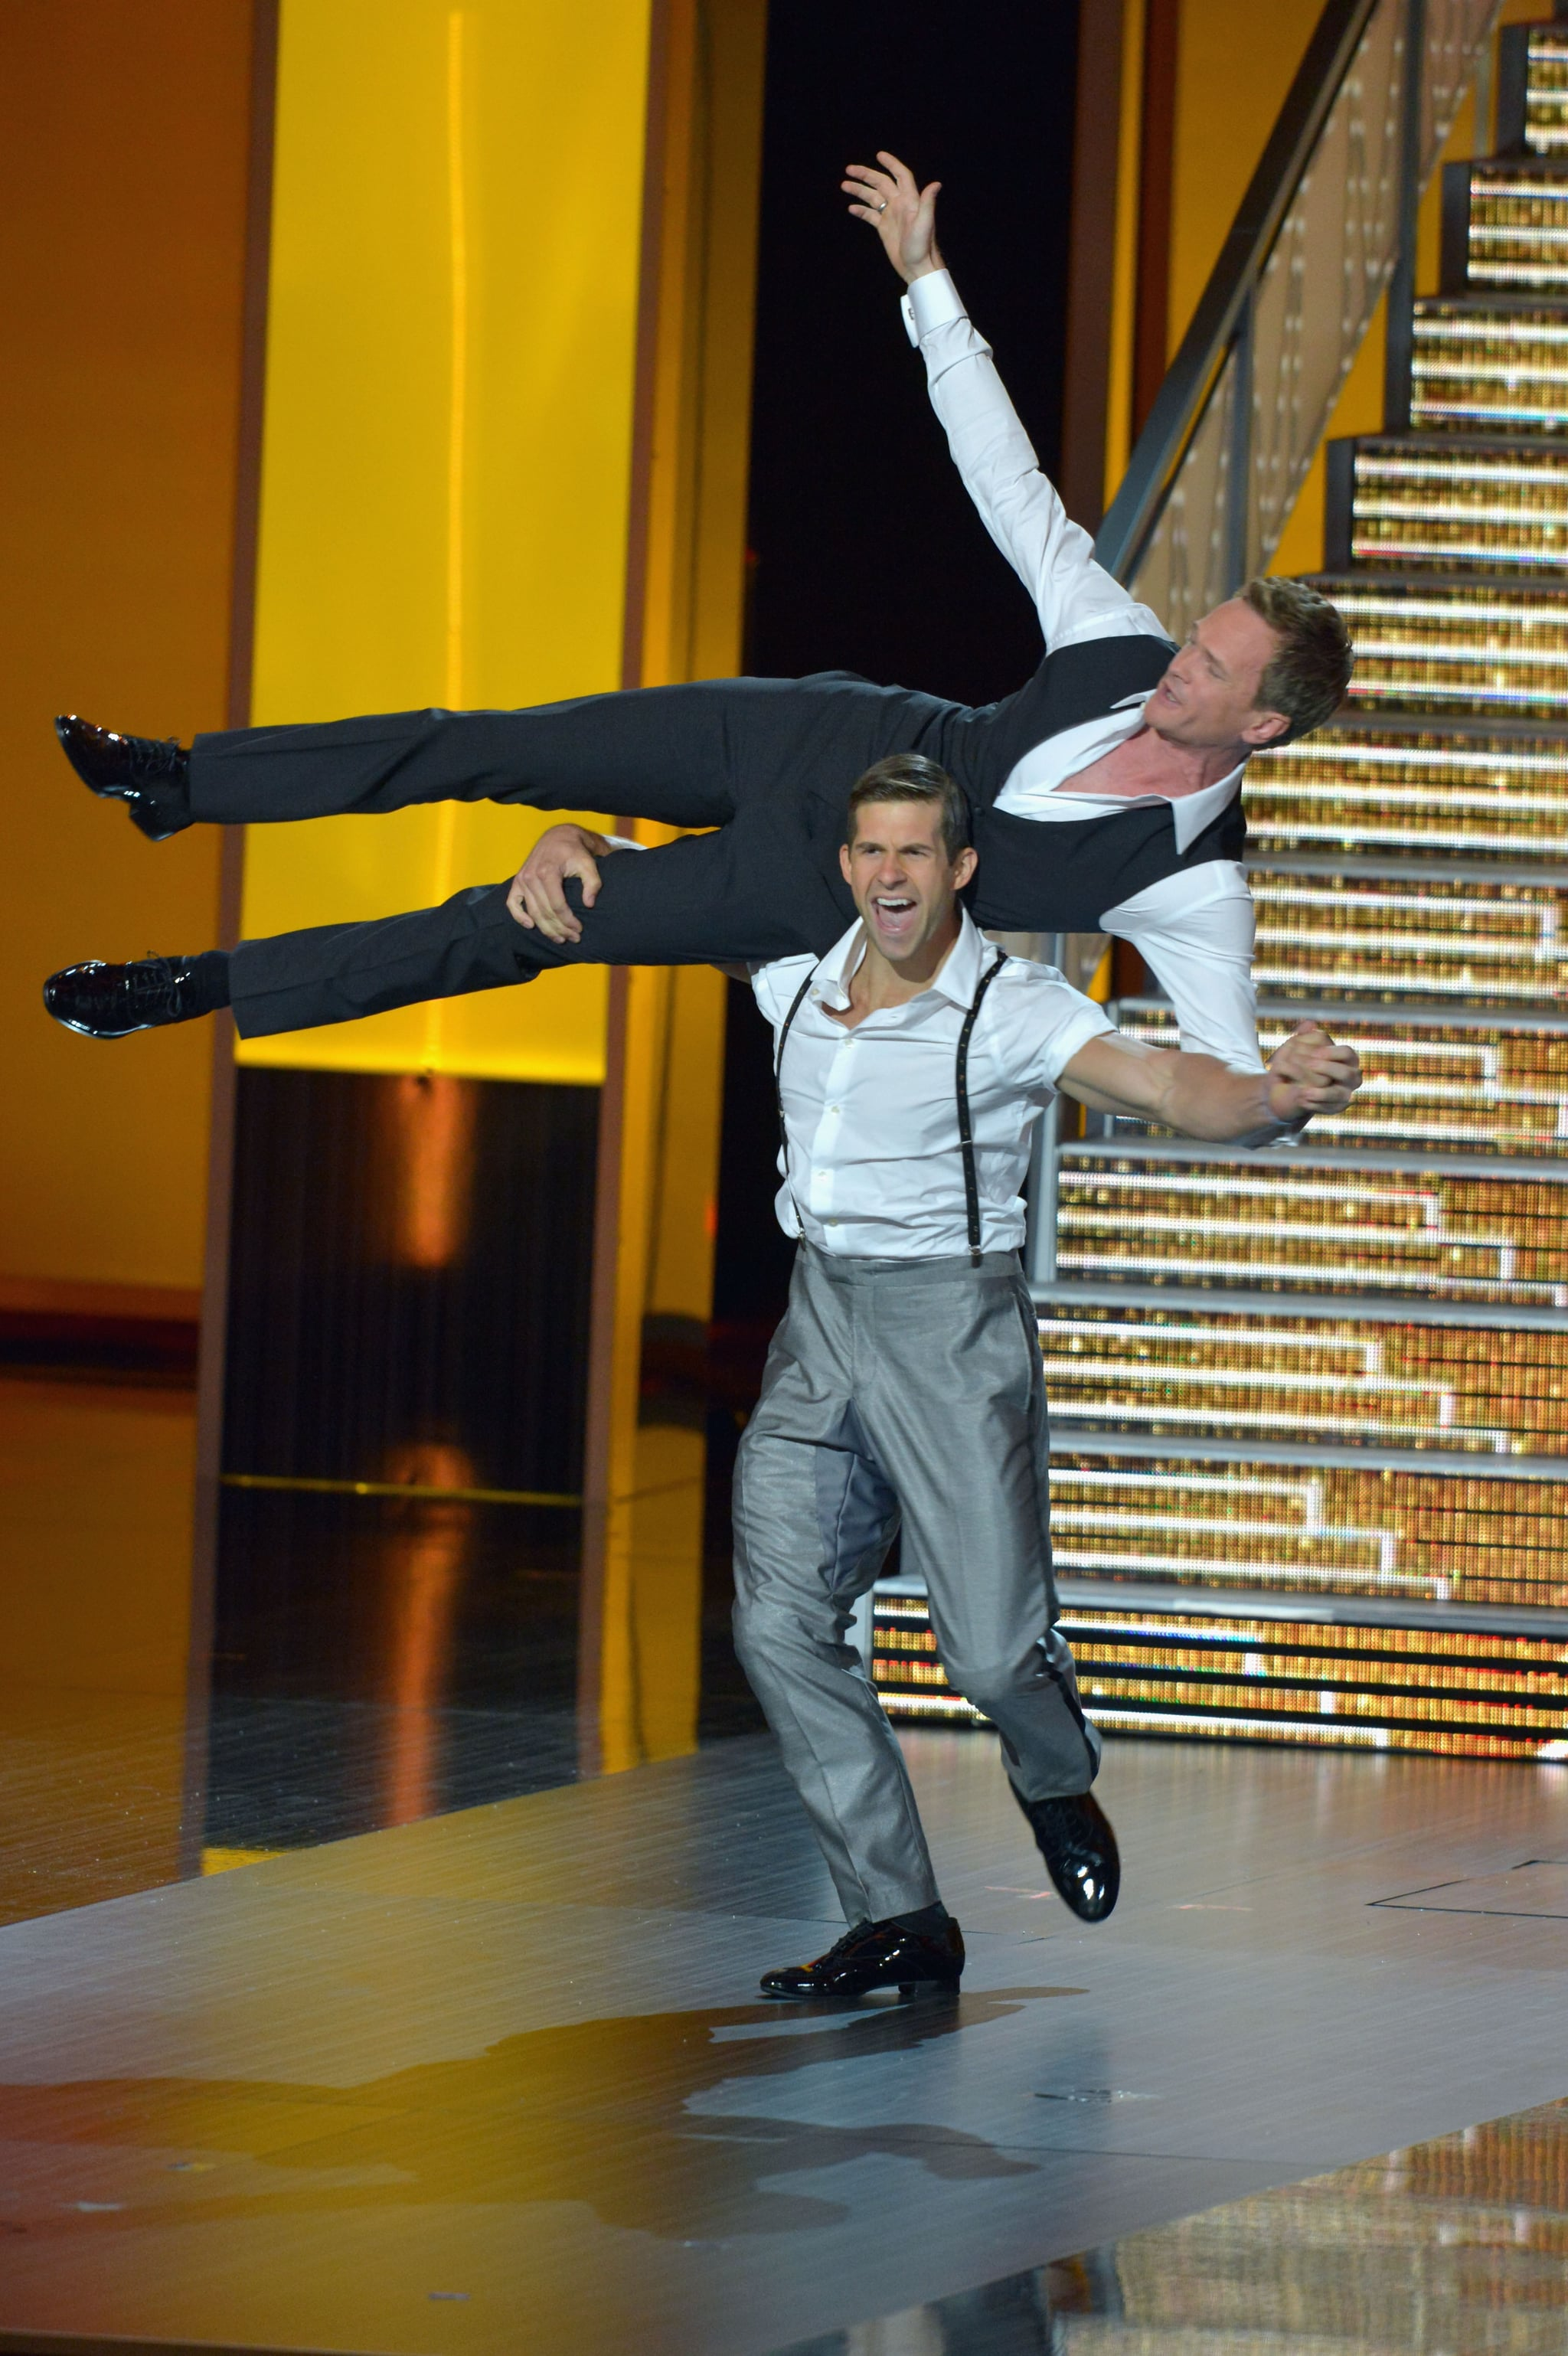 Neil Patrick Harris got a lift during his midshow performance.